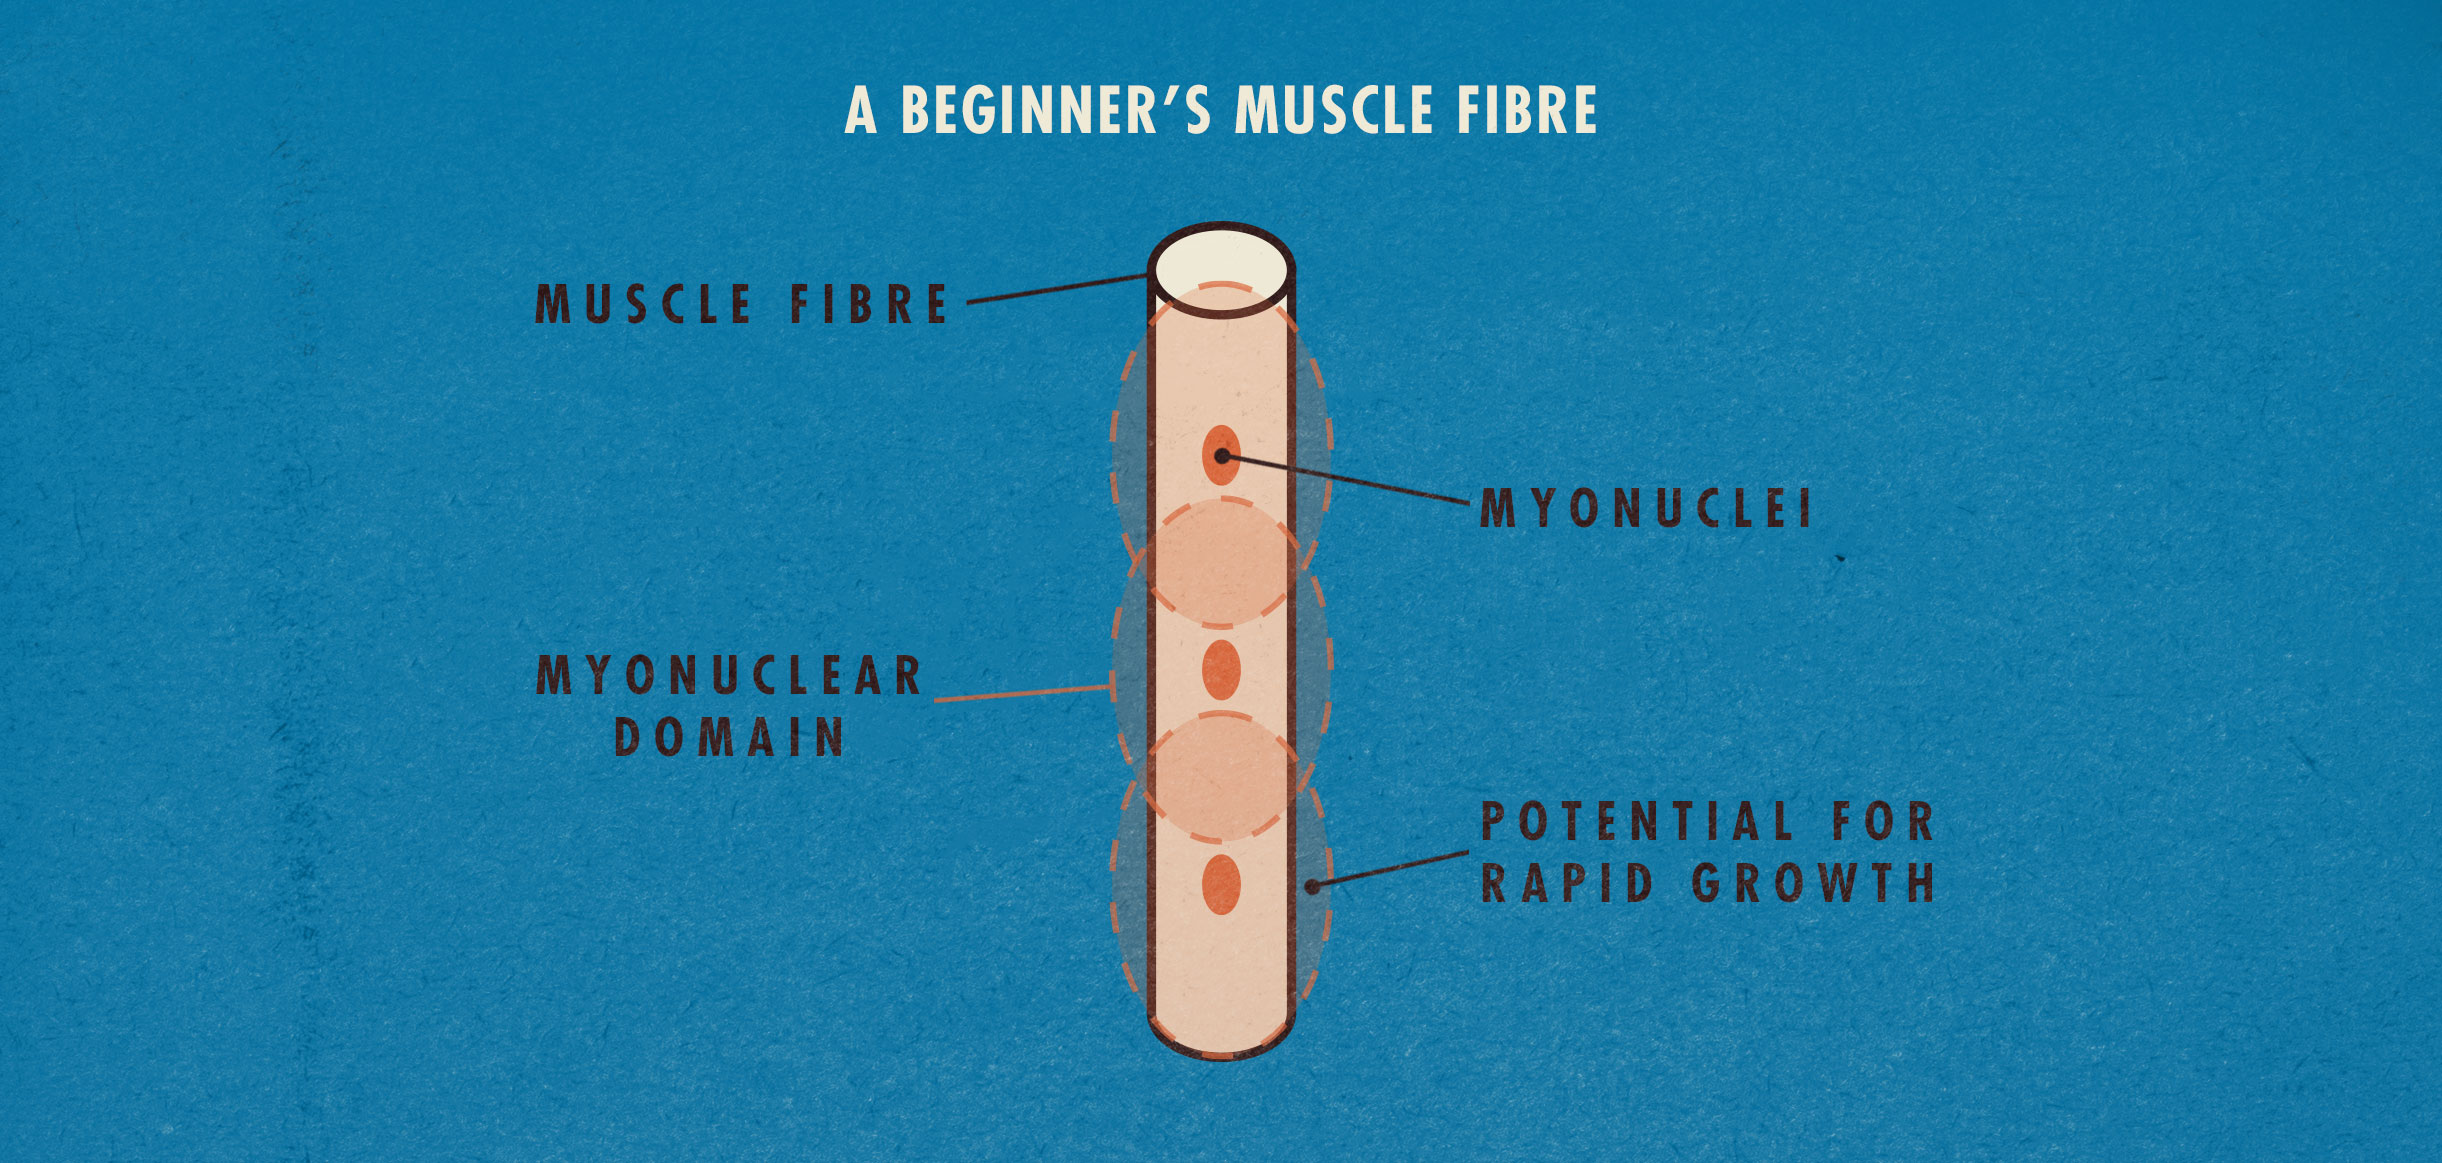 Newbie Gains: A Beginner's Muscle Fibre